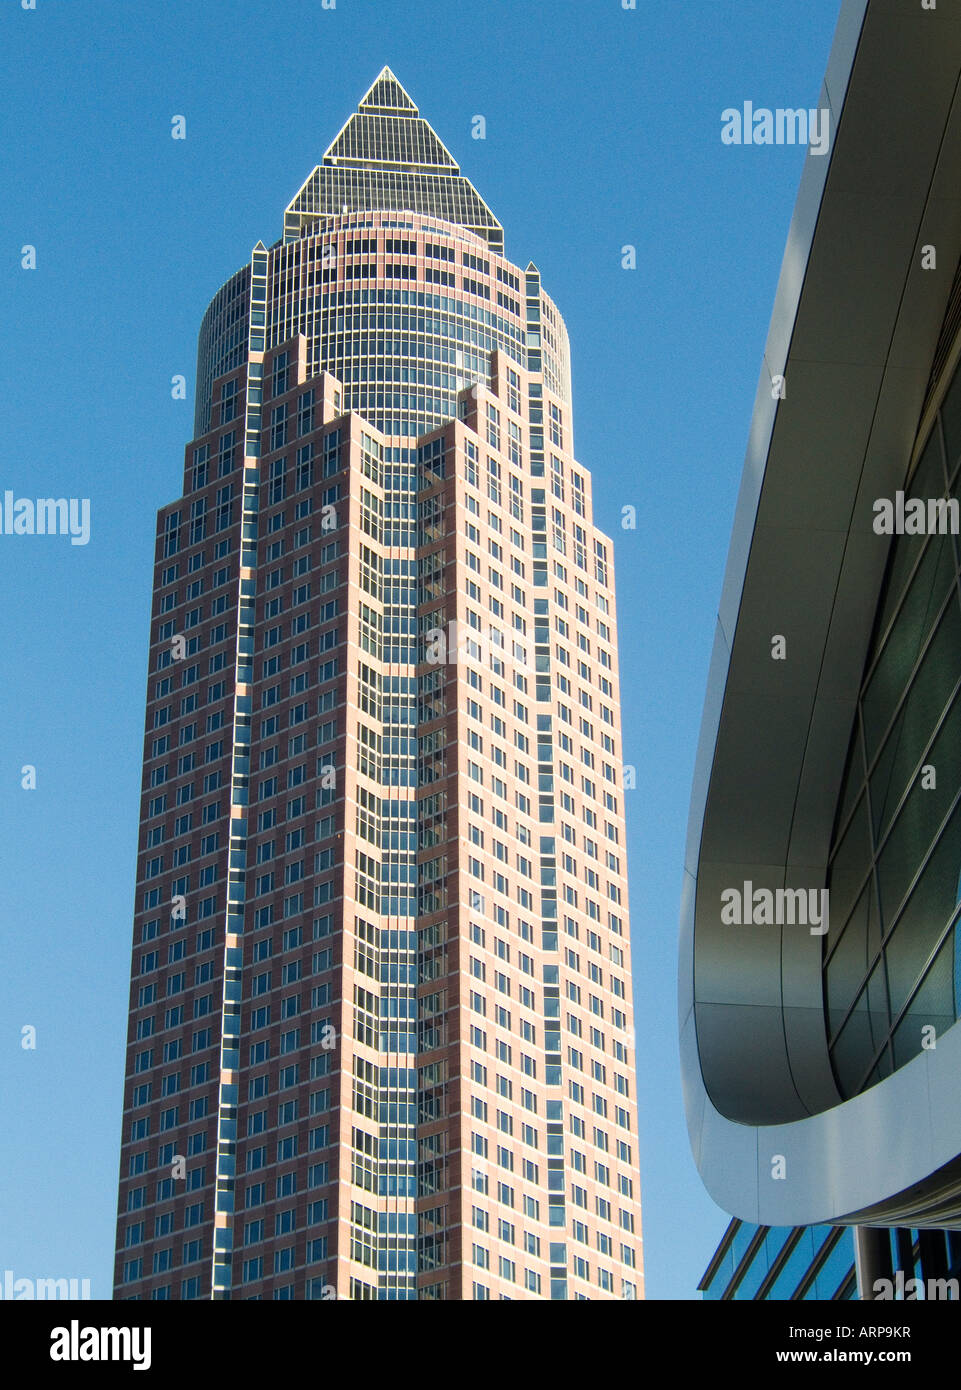 The MesseTurm or Trade Fair Tower in the Messegelande complex in central area of Frankfurt, Germany Stock Photo